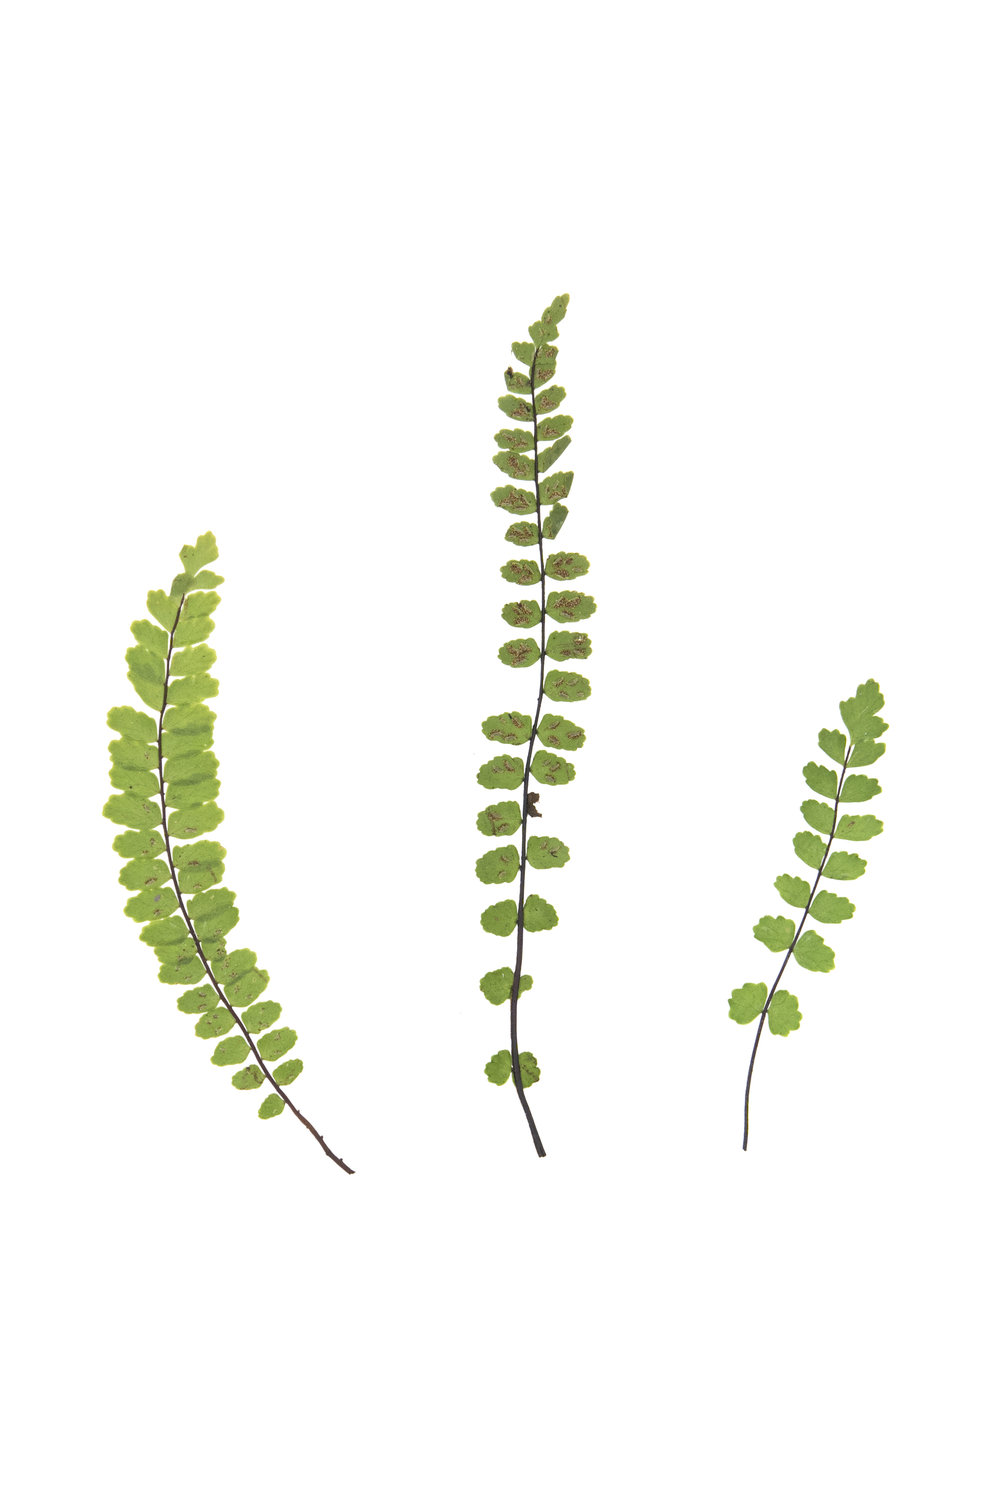 New! Maidenhair Spleenwort / Asplenium trichomanes